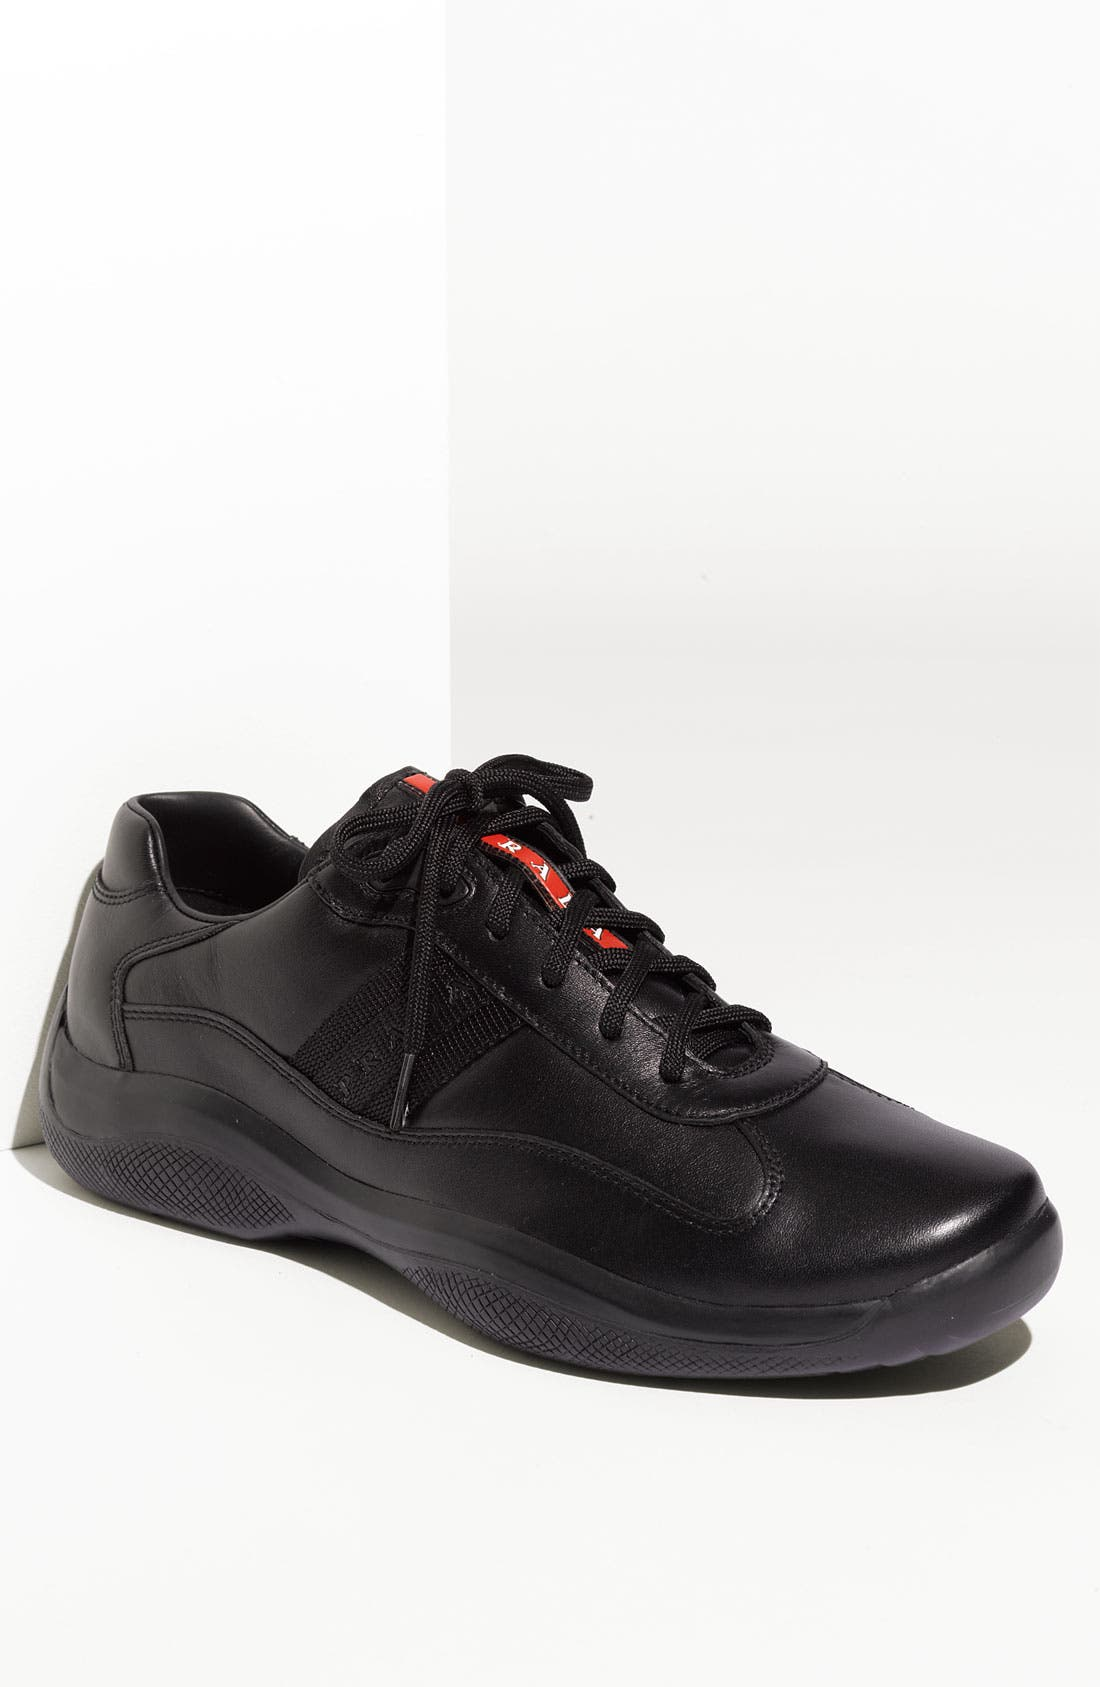 Main Image - Prada 'Eagle' Lace-Up Sneaker (Men)